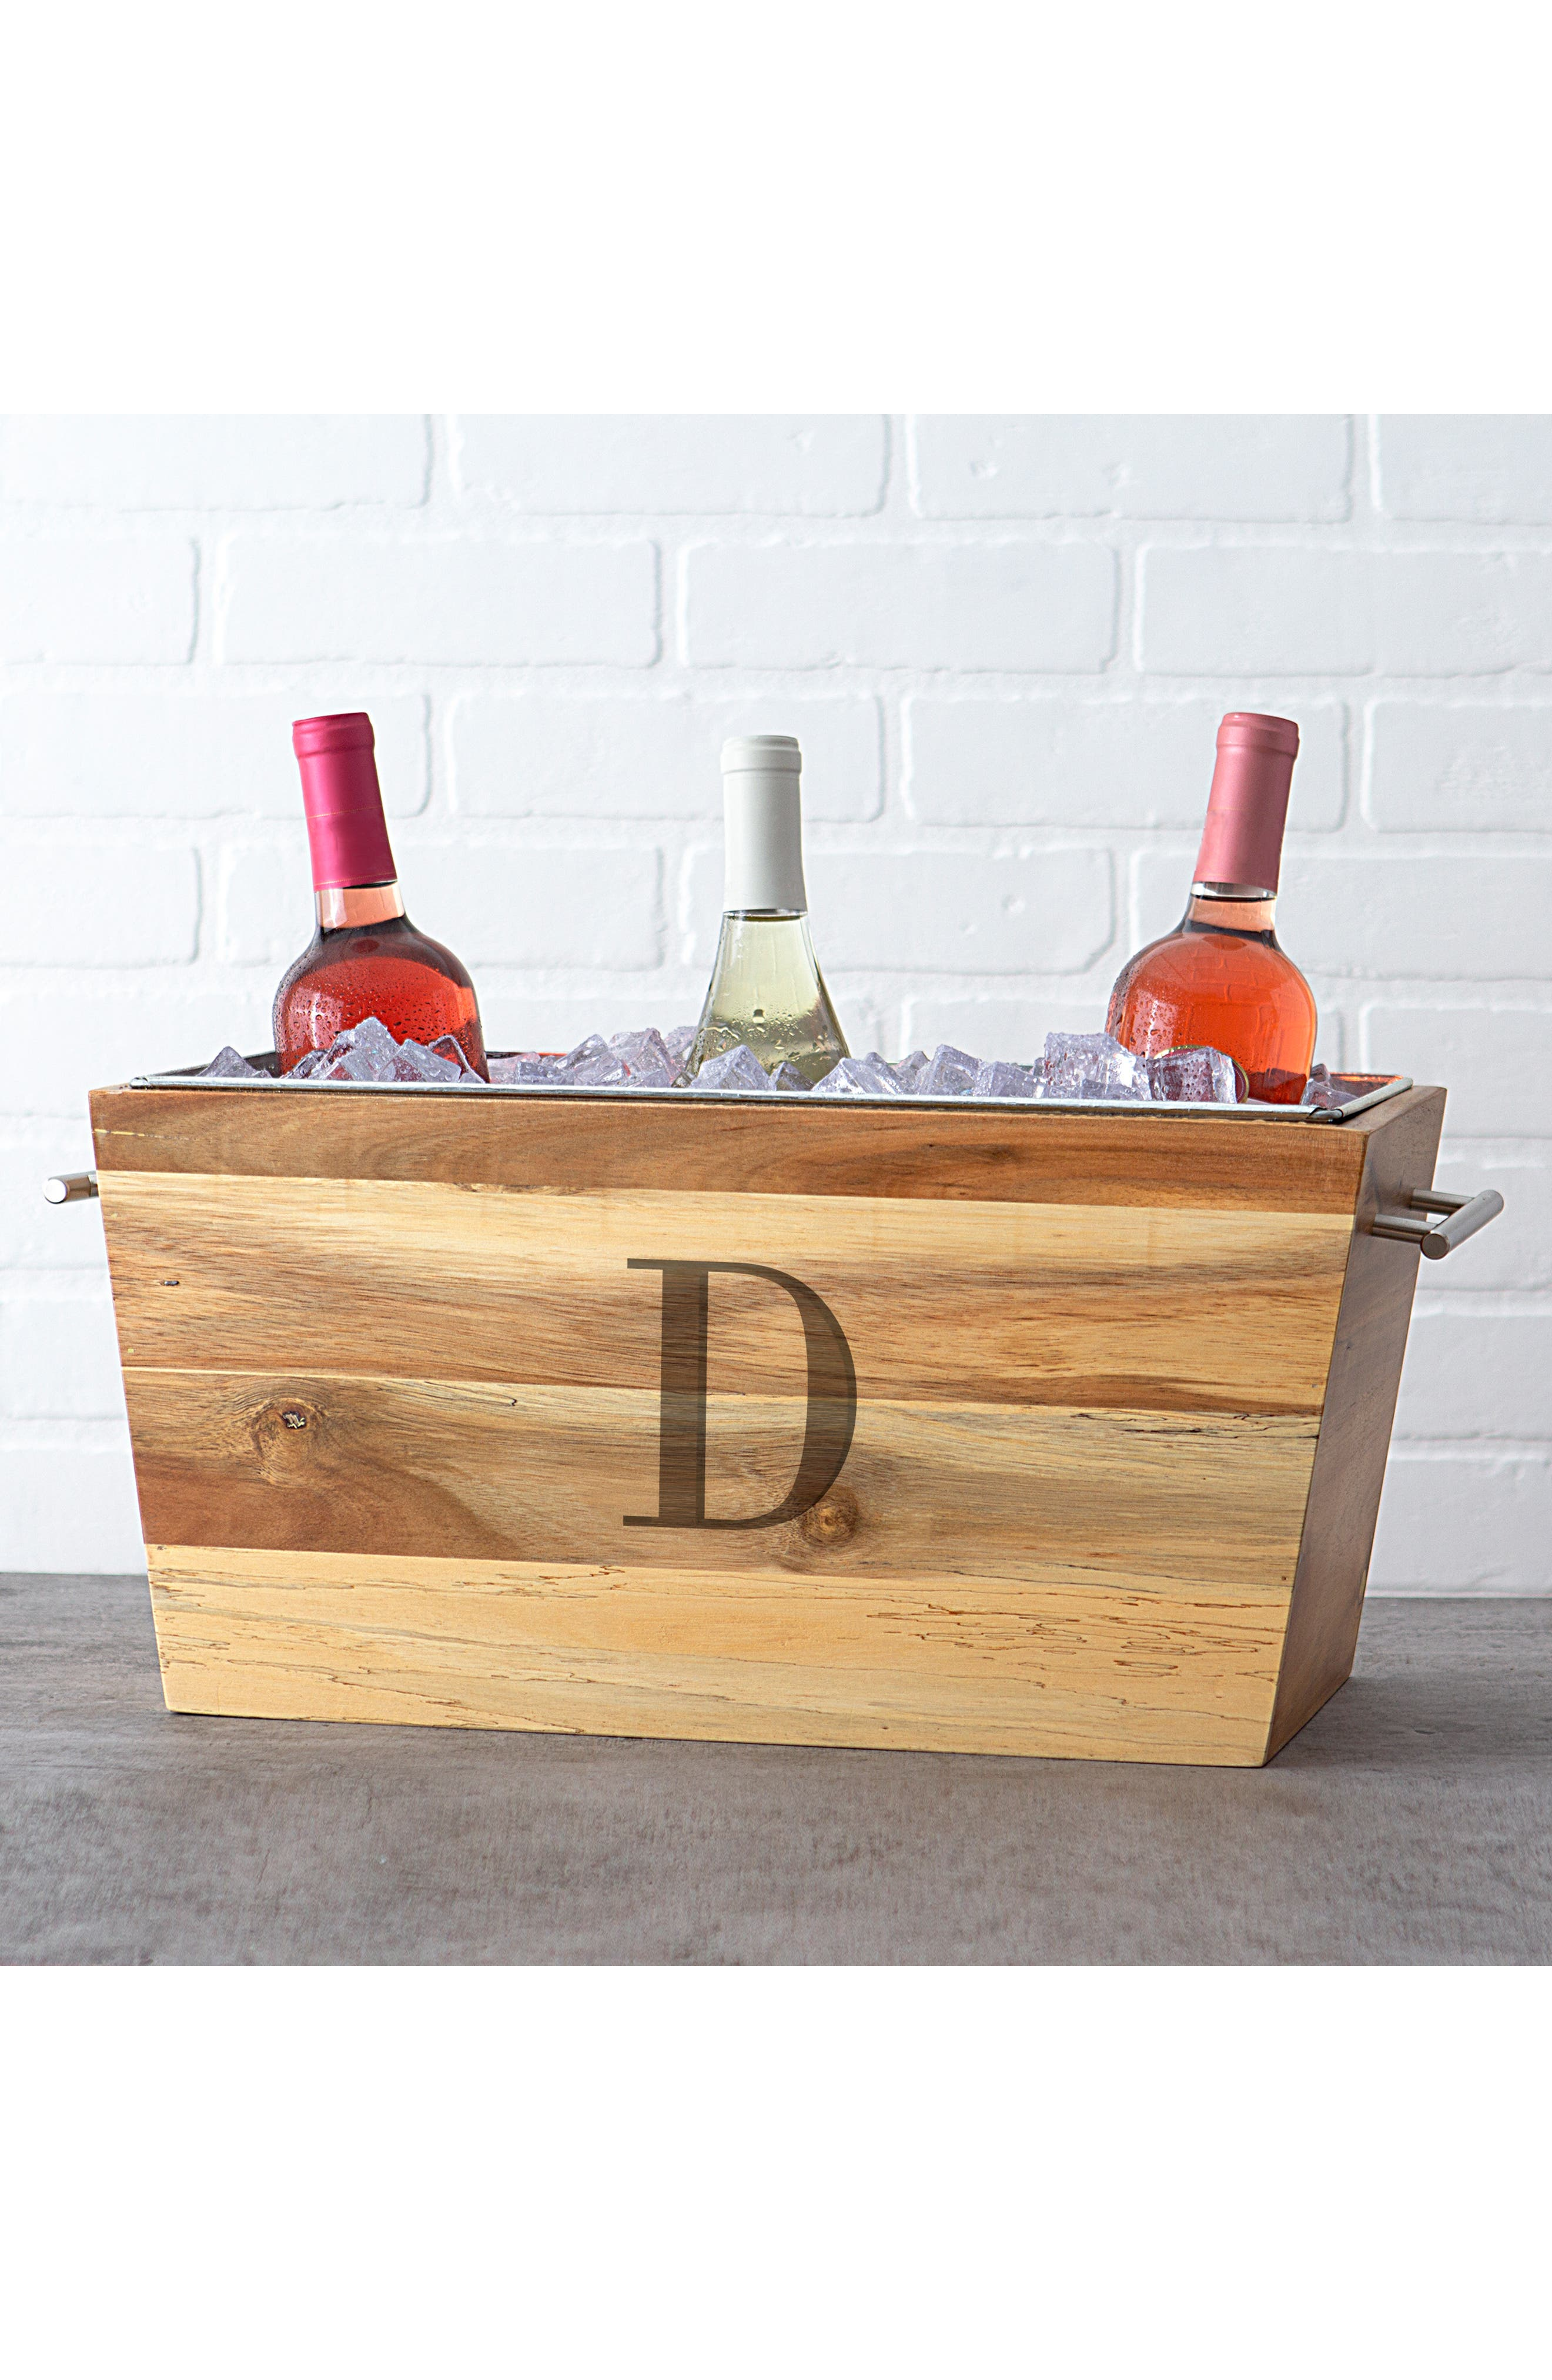 Monogram Wood Beverage Trough,                             Alternate thumbnail 6, color,                             200